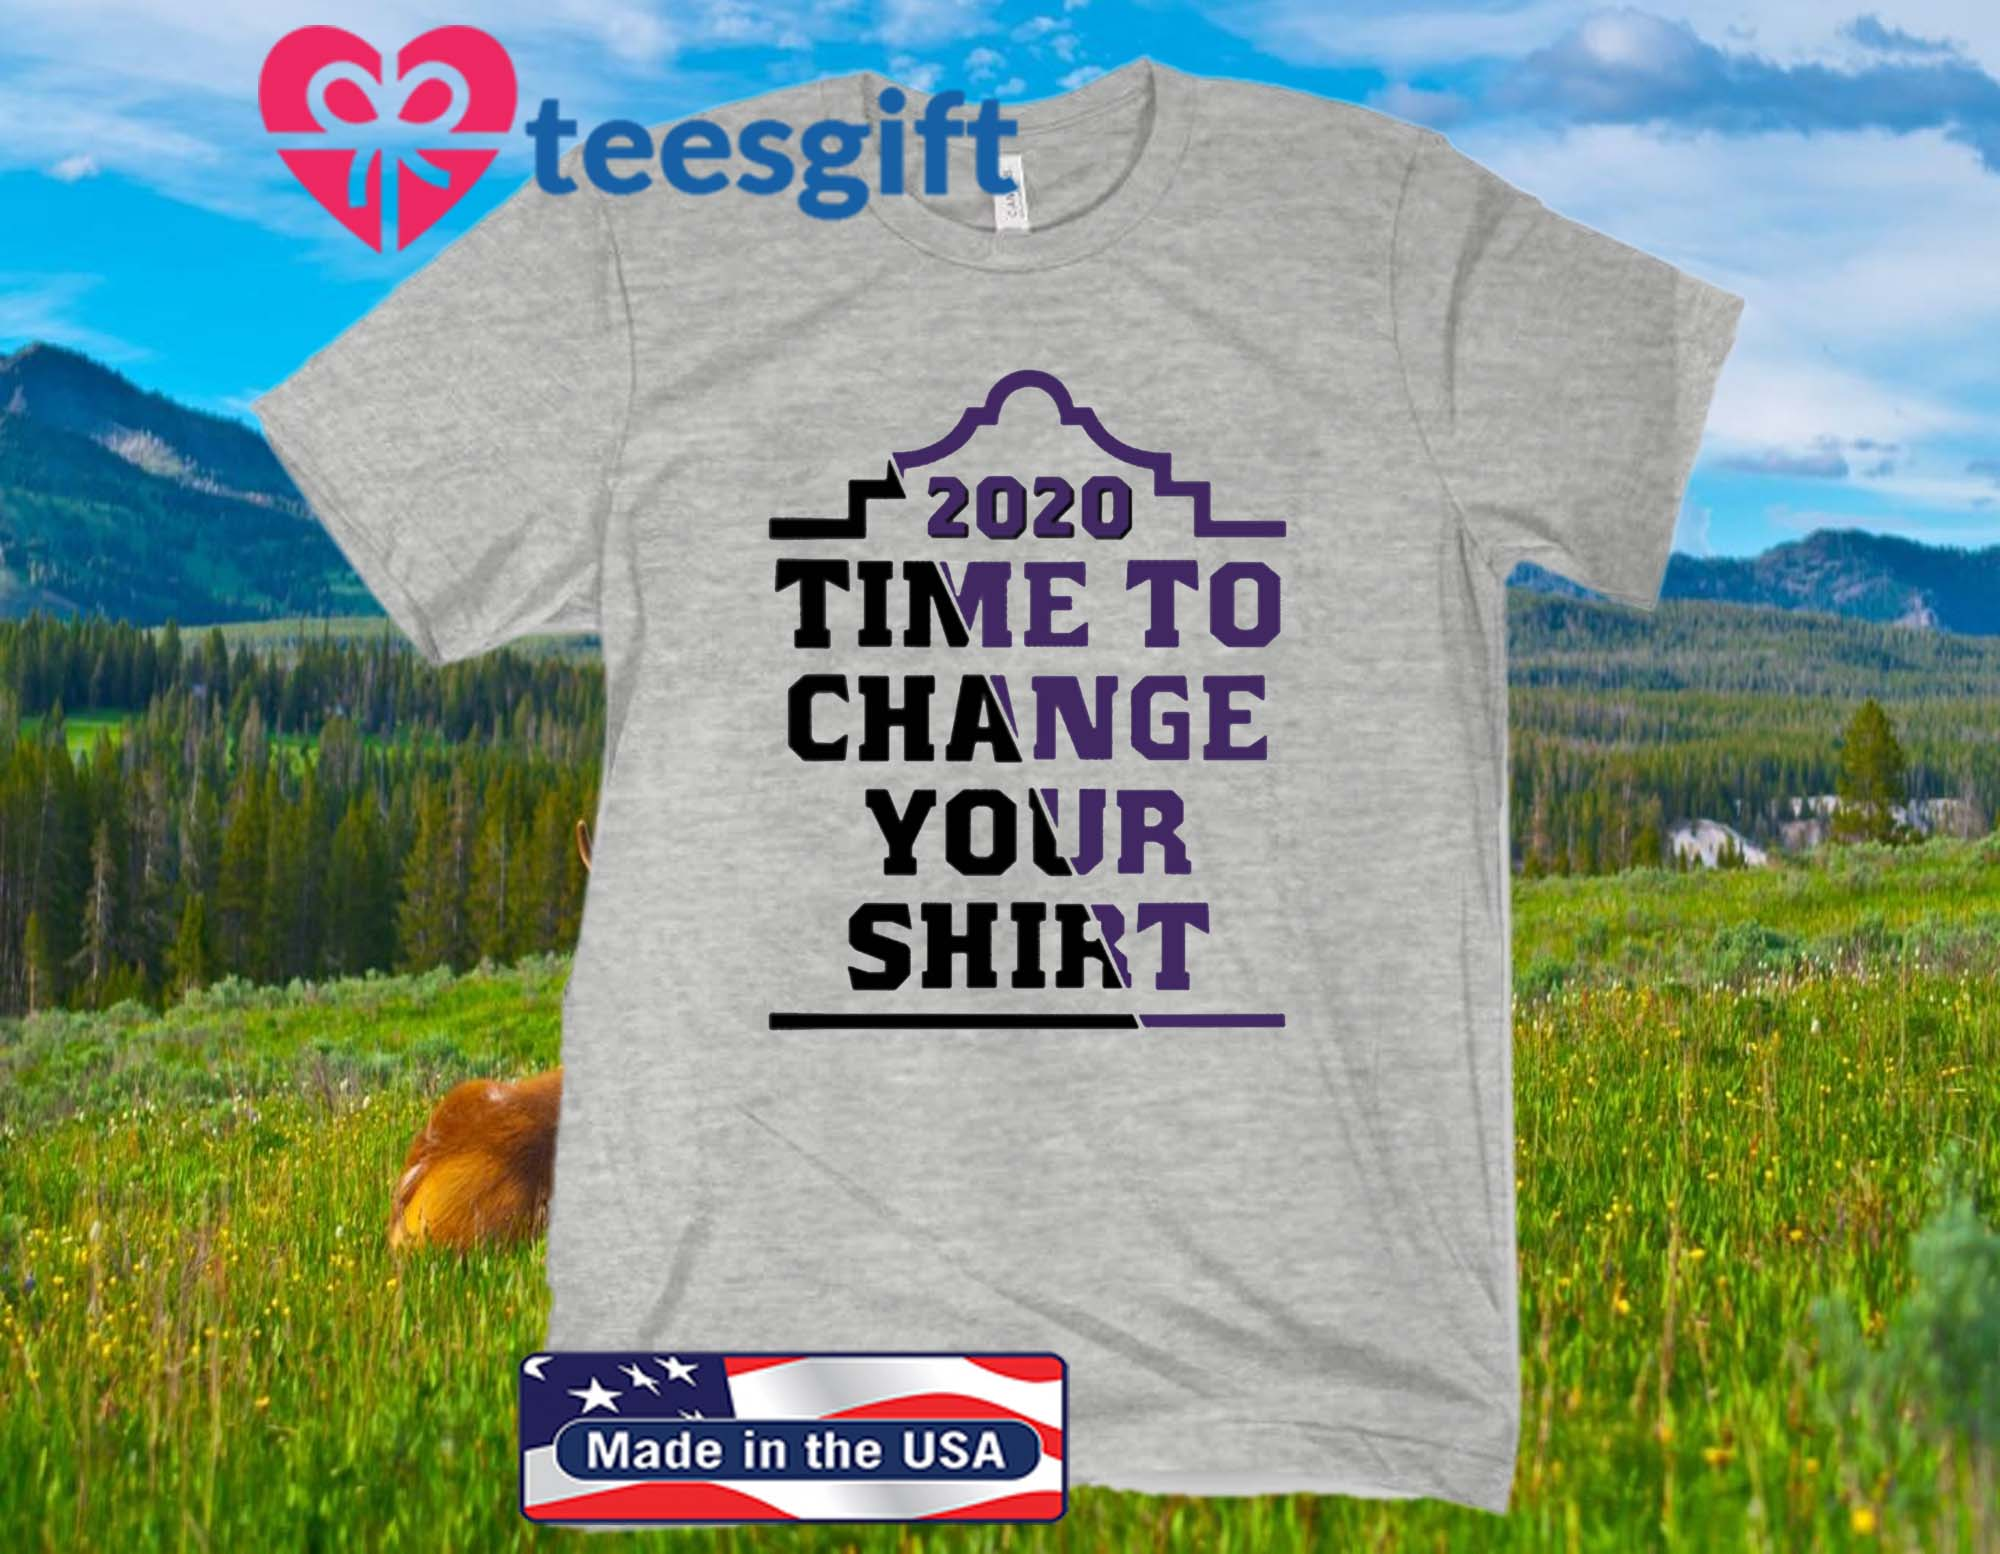 TIME TO CHANGE YOUR 2020 T-SHIRT